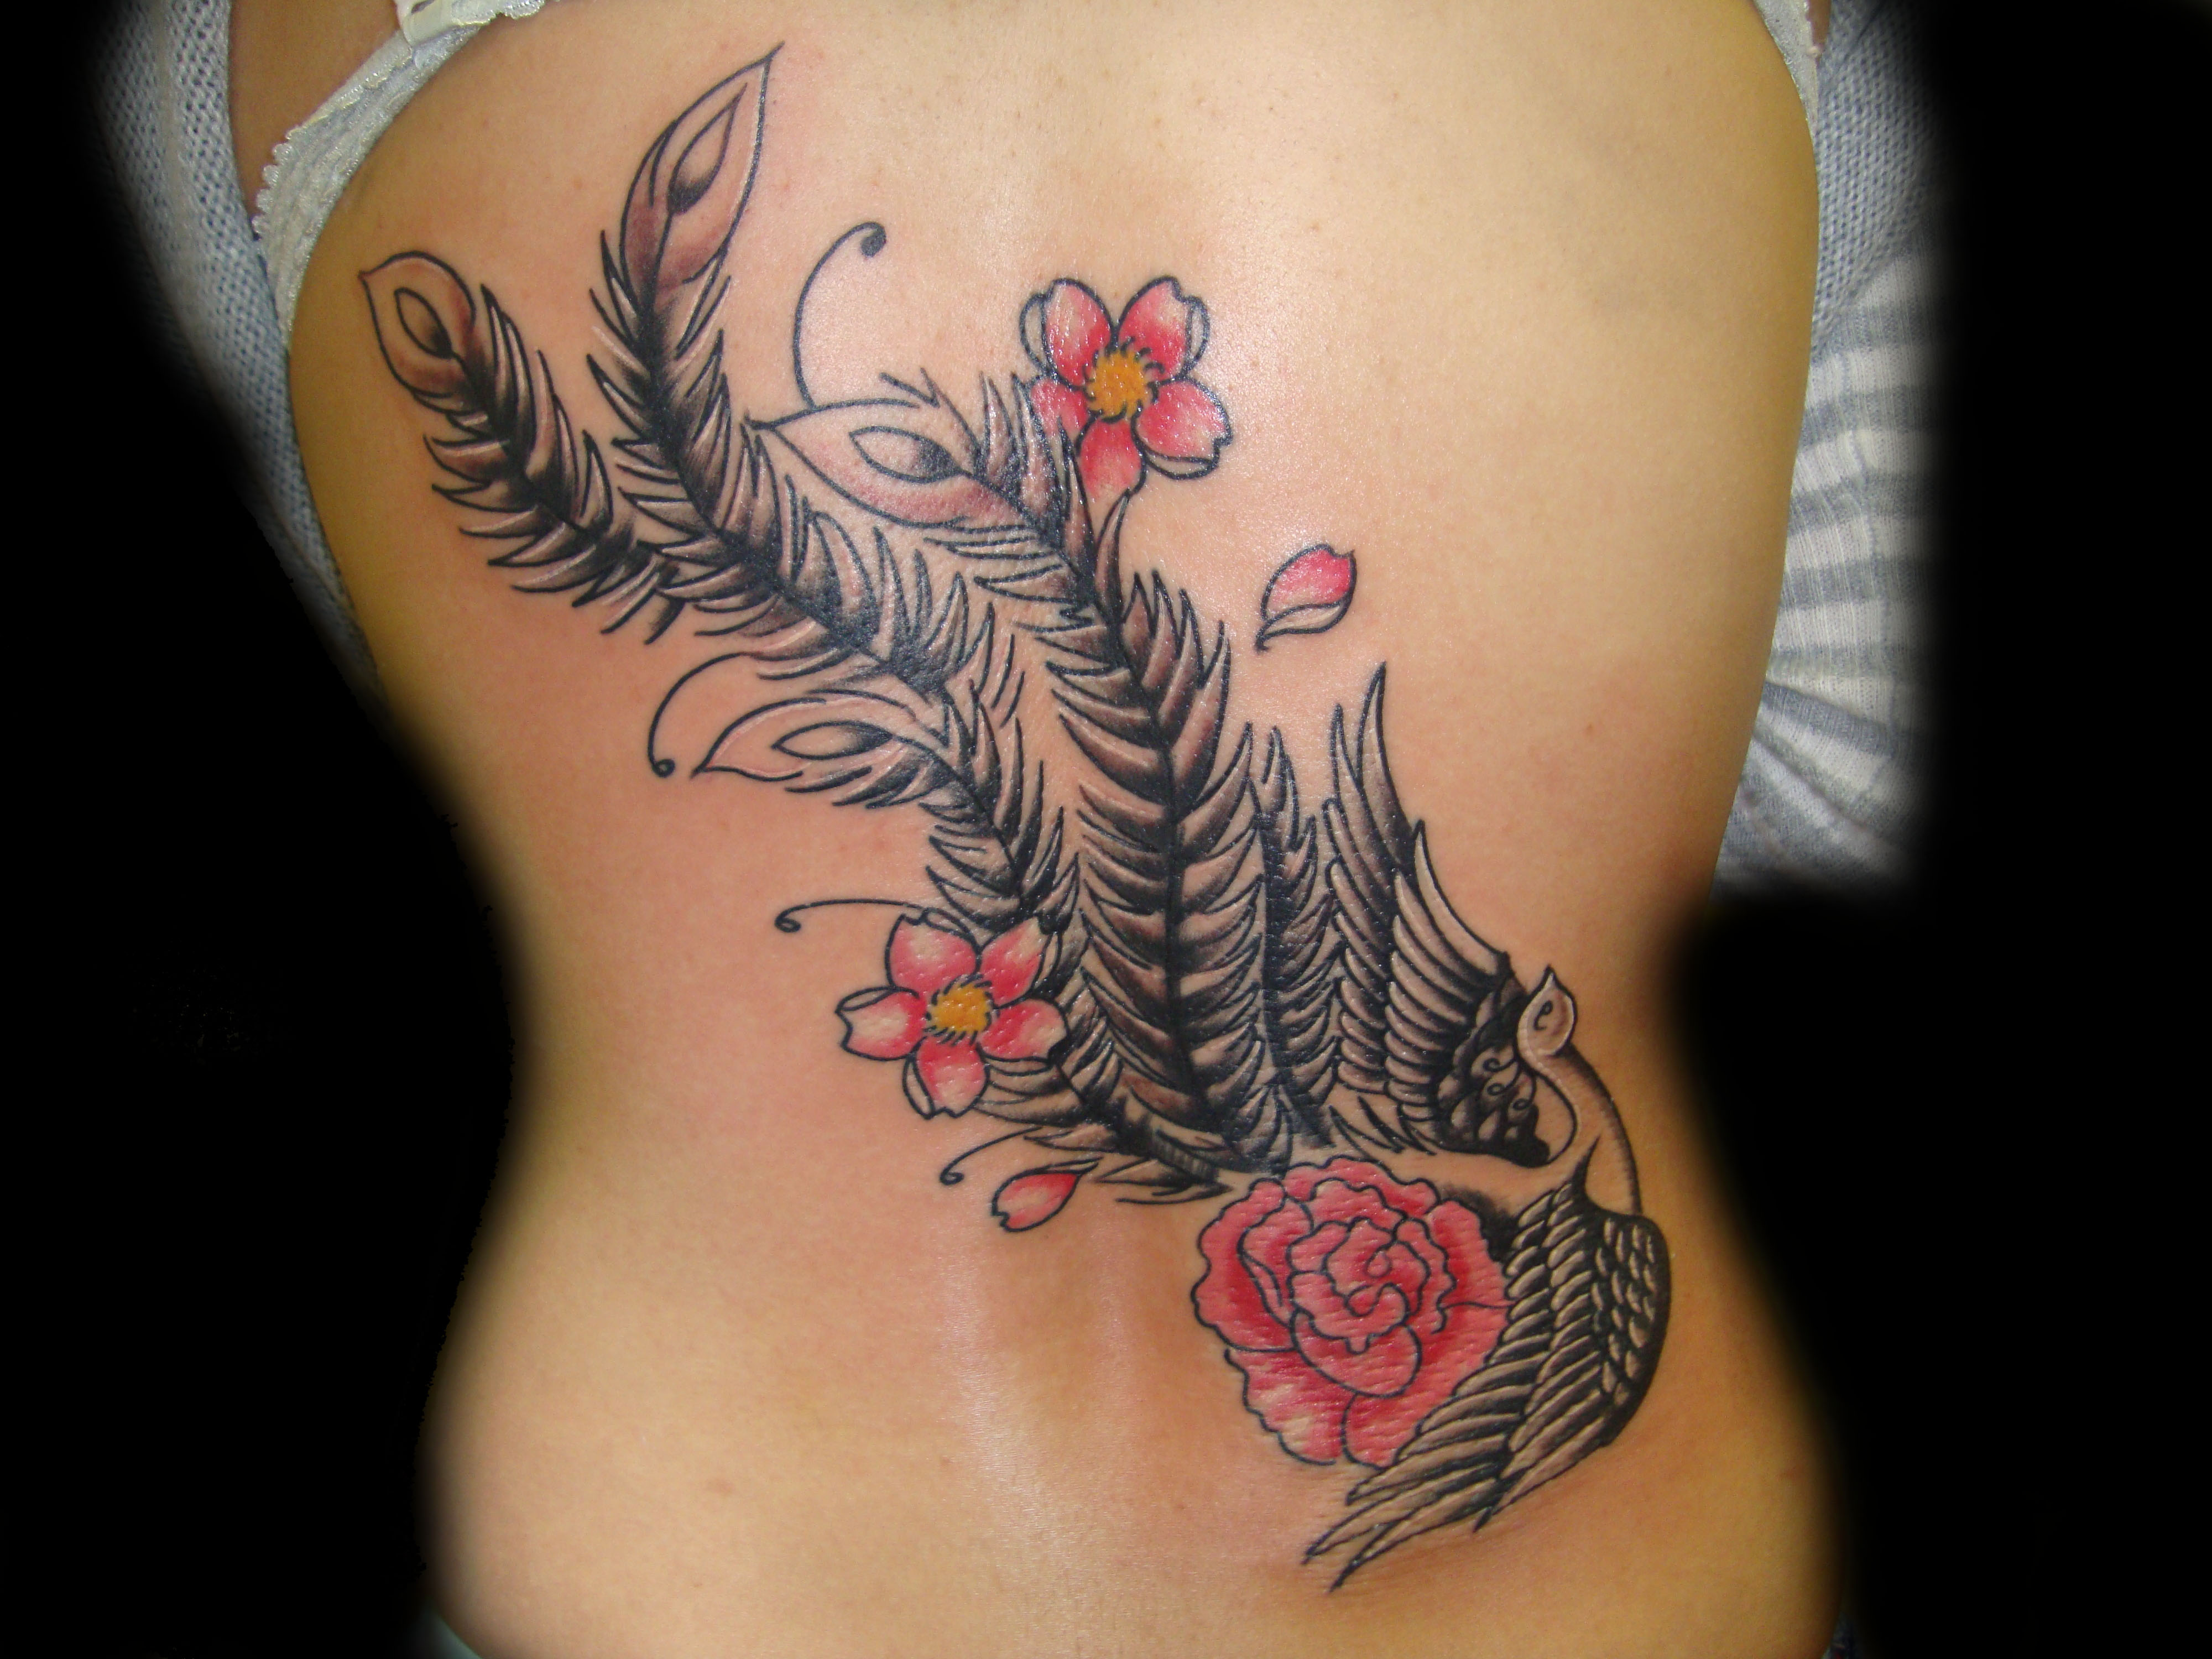 Bird tattoos designs ideas and meaning tattoos for you - Peacock Feather Tattoo Designs Peacock Feather Tattoo Meaning